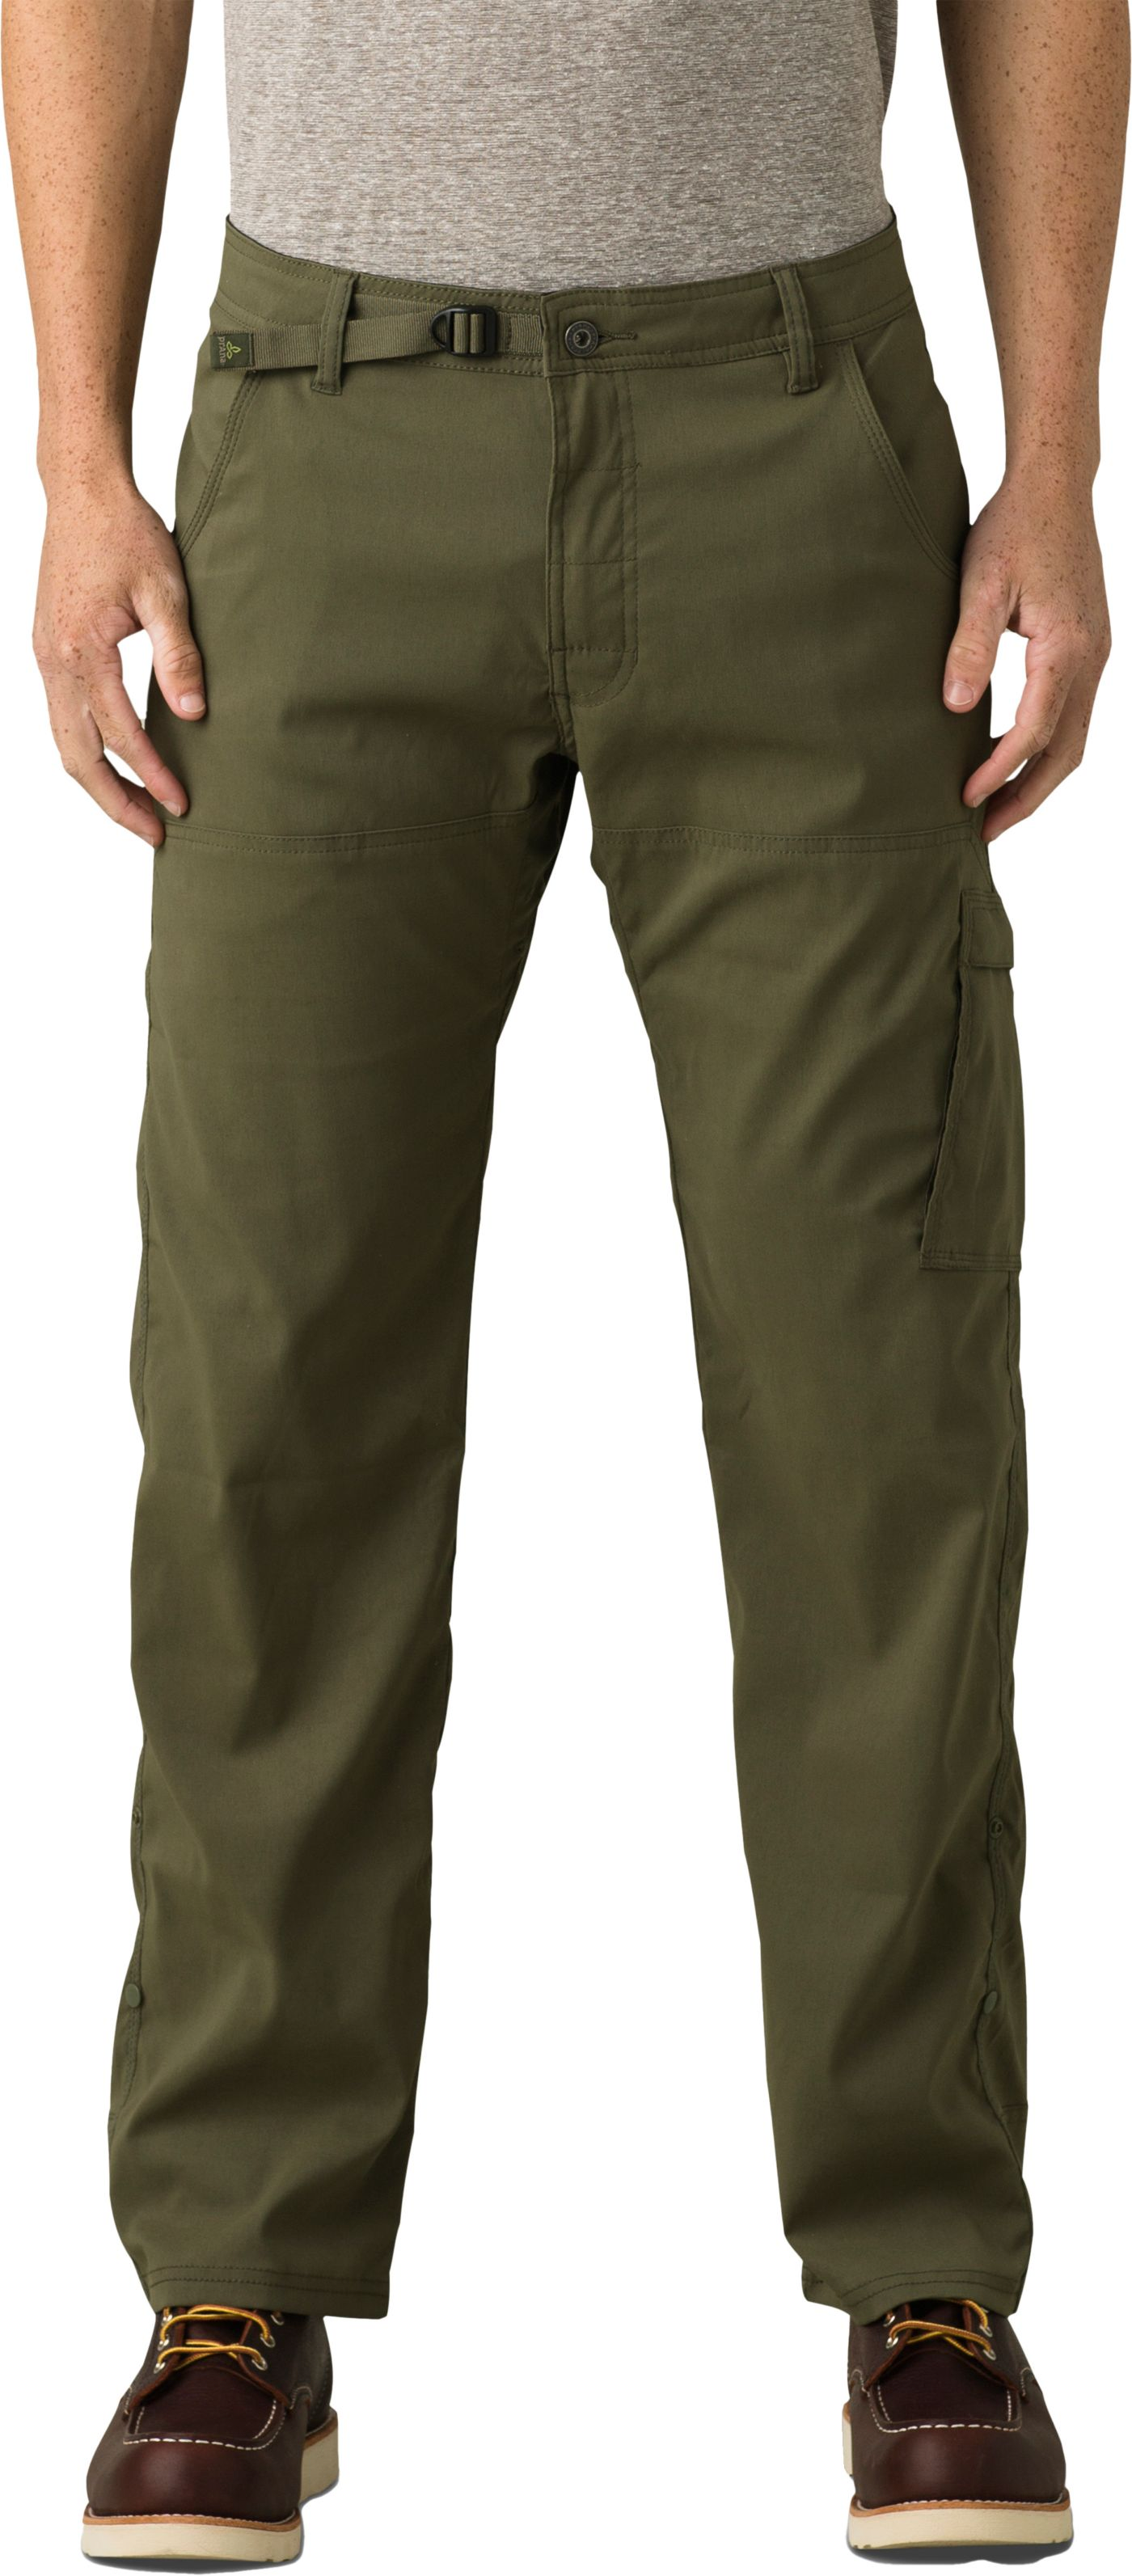 prAna Men's Stretch Zion Pants (Regular and Big & Tall)